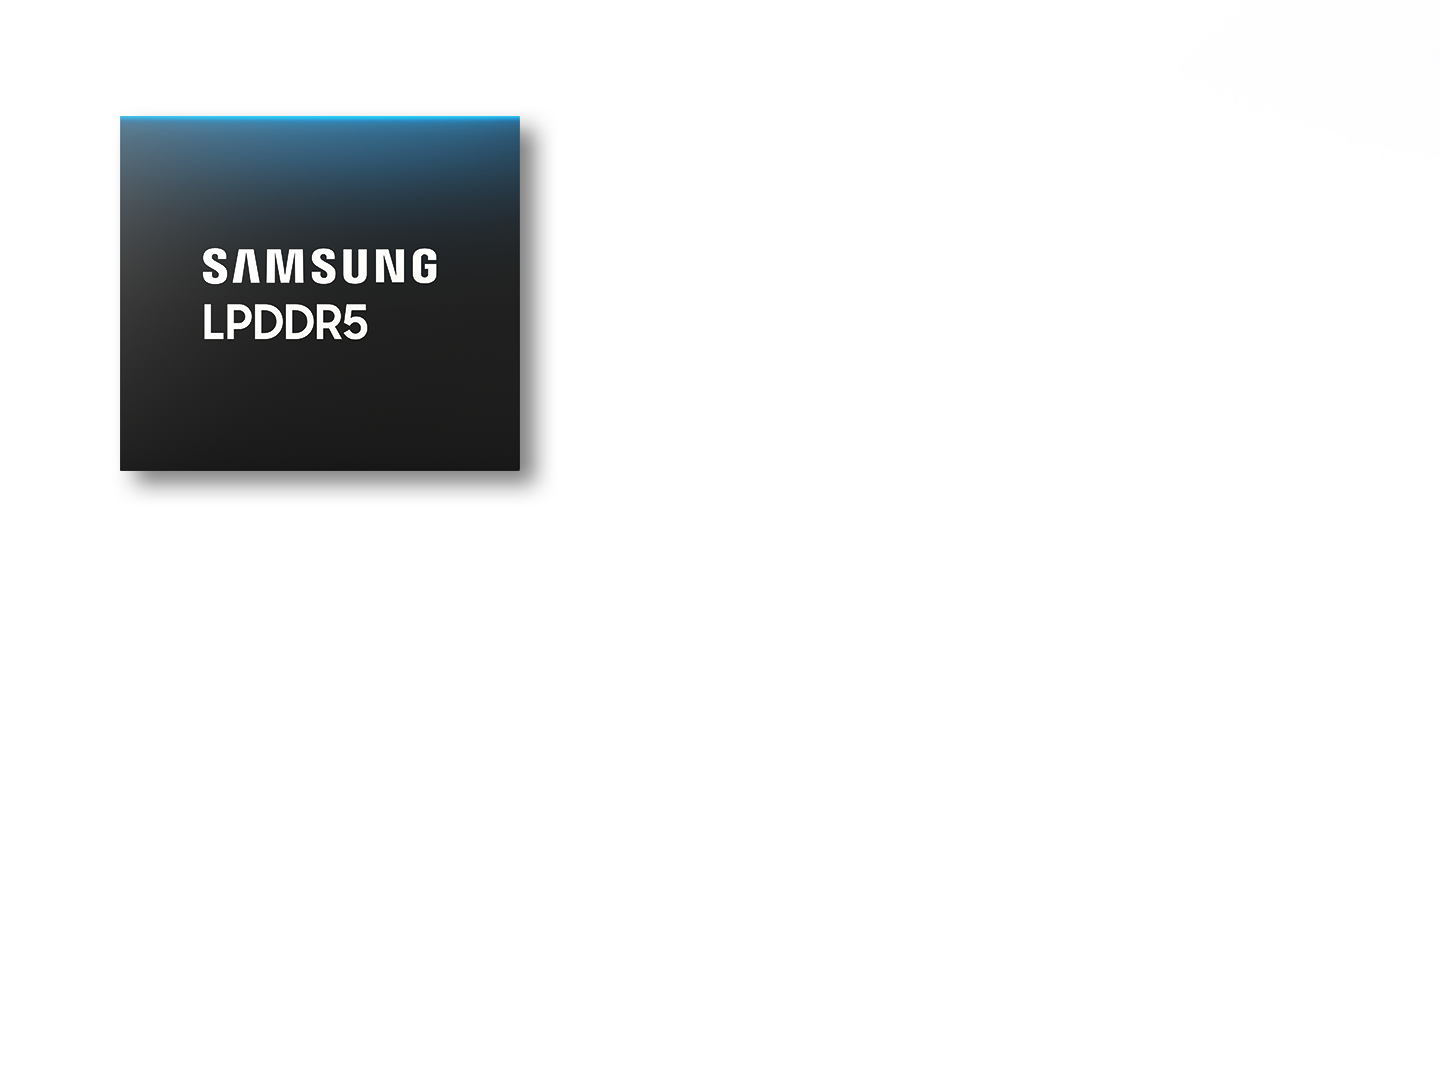 Samsung LPDDR5 against an image of 5G and AR map.